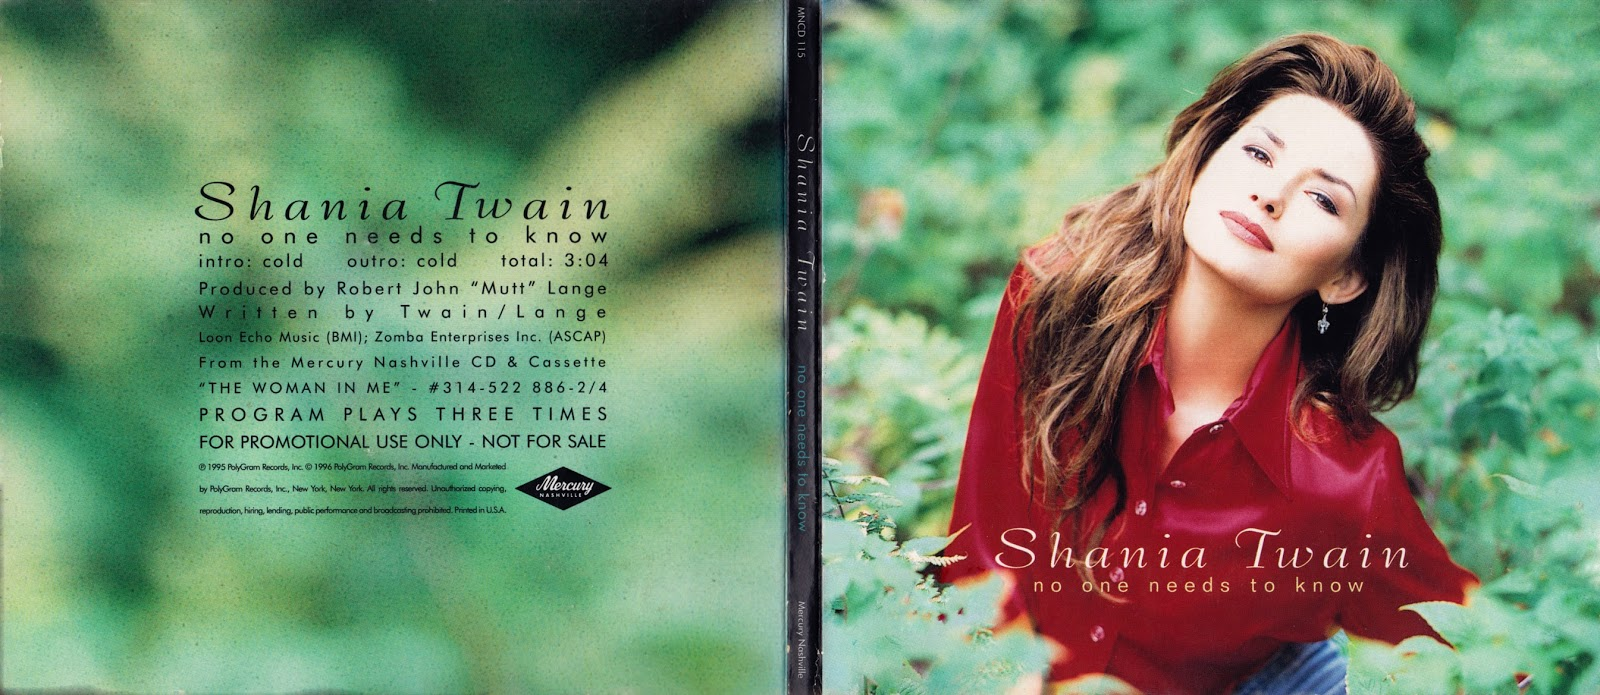 "twain singles Another year, another album that shania twain cycled through six singles ""honey, i'm home"" was twain's final no 1 country radio tune here, twain's had a long day and getting pampered in the form of a brewski and a foot rub is the only cure."